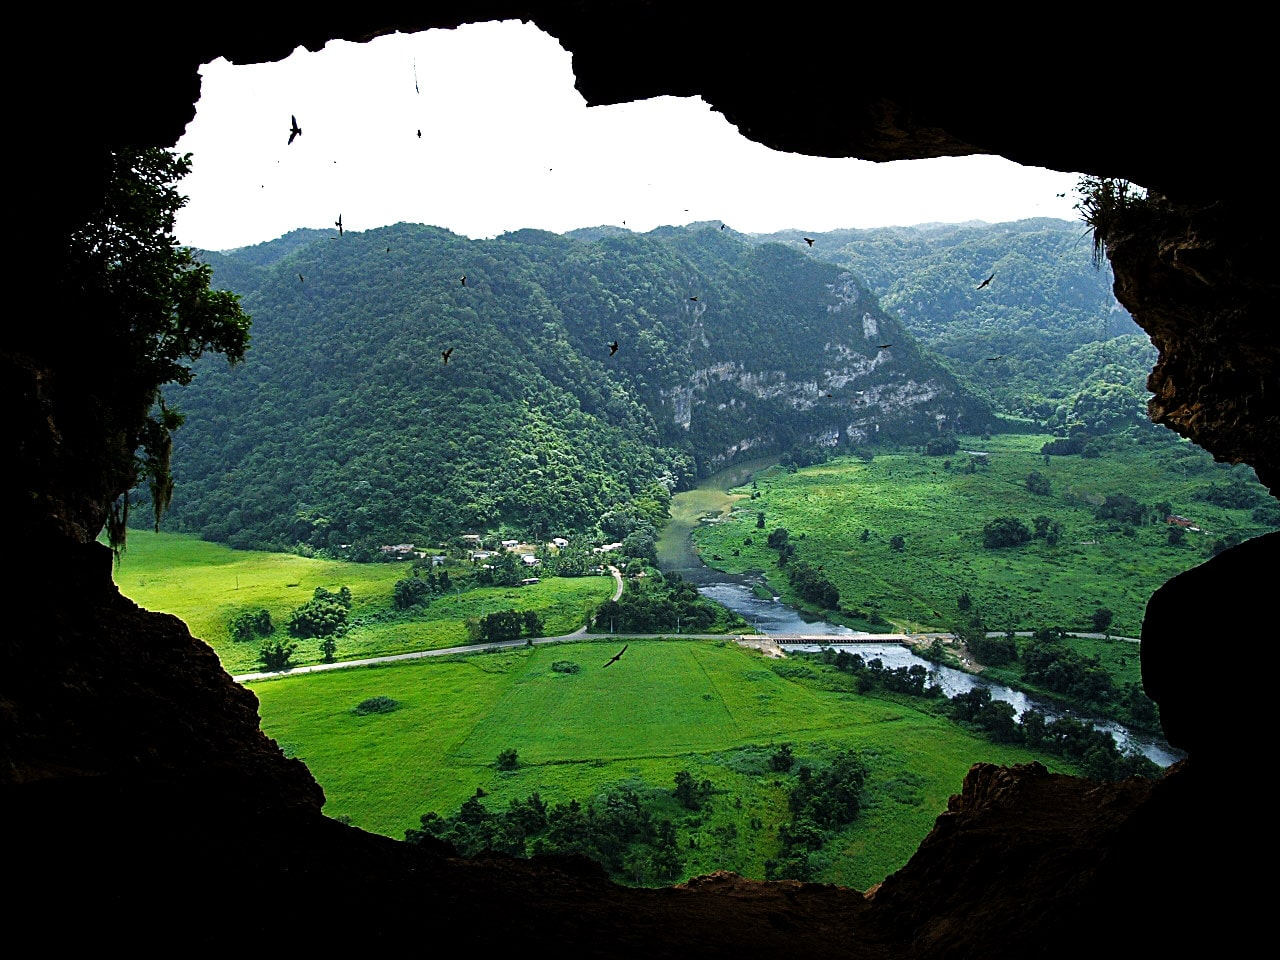 La Cueva Ventana is one of the places to go in Puerto Rico